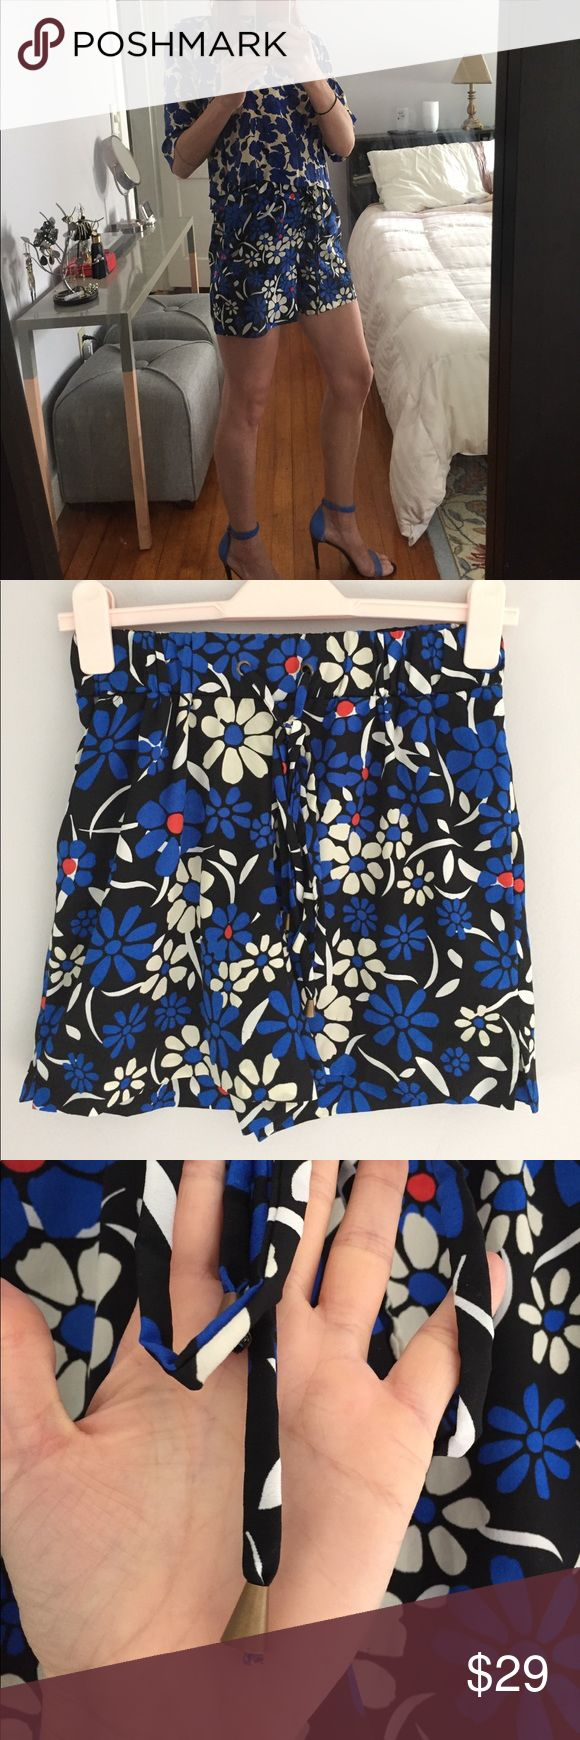 "Walter Baker High Waist Short Cute and comfy. Worn once - excellent condition. Elastic and tie waist. Dress up or down. Size M fits me nicely at 5'6"" but could definitely fit taller as well. Walter Baker Shorts"